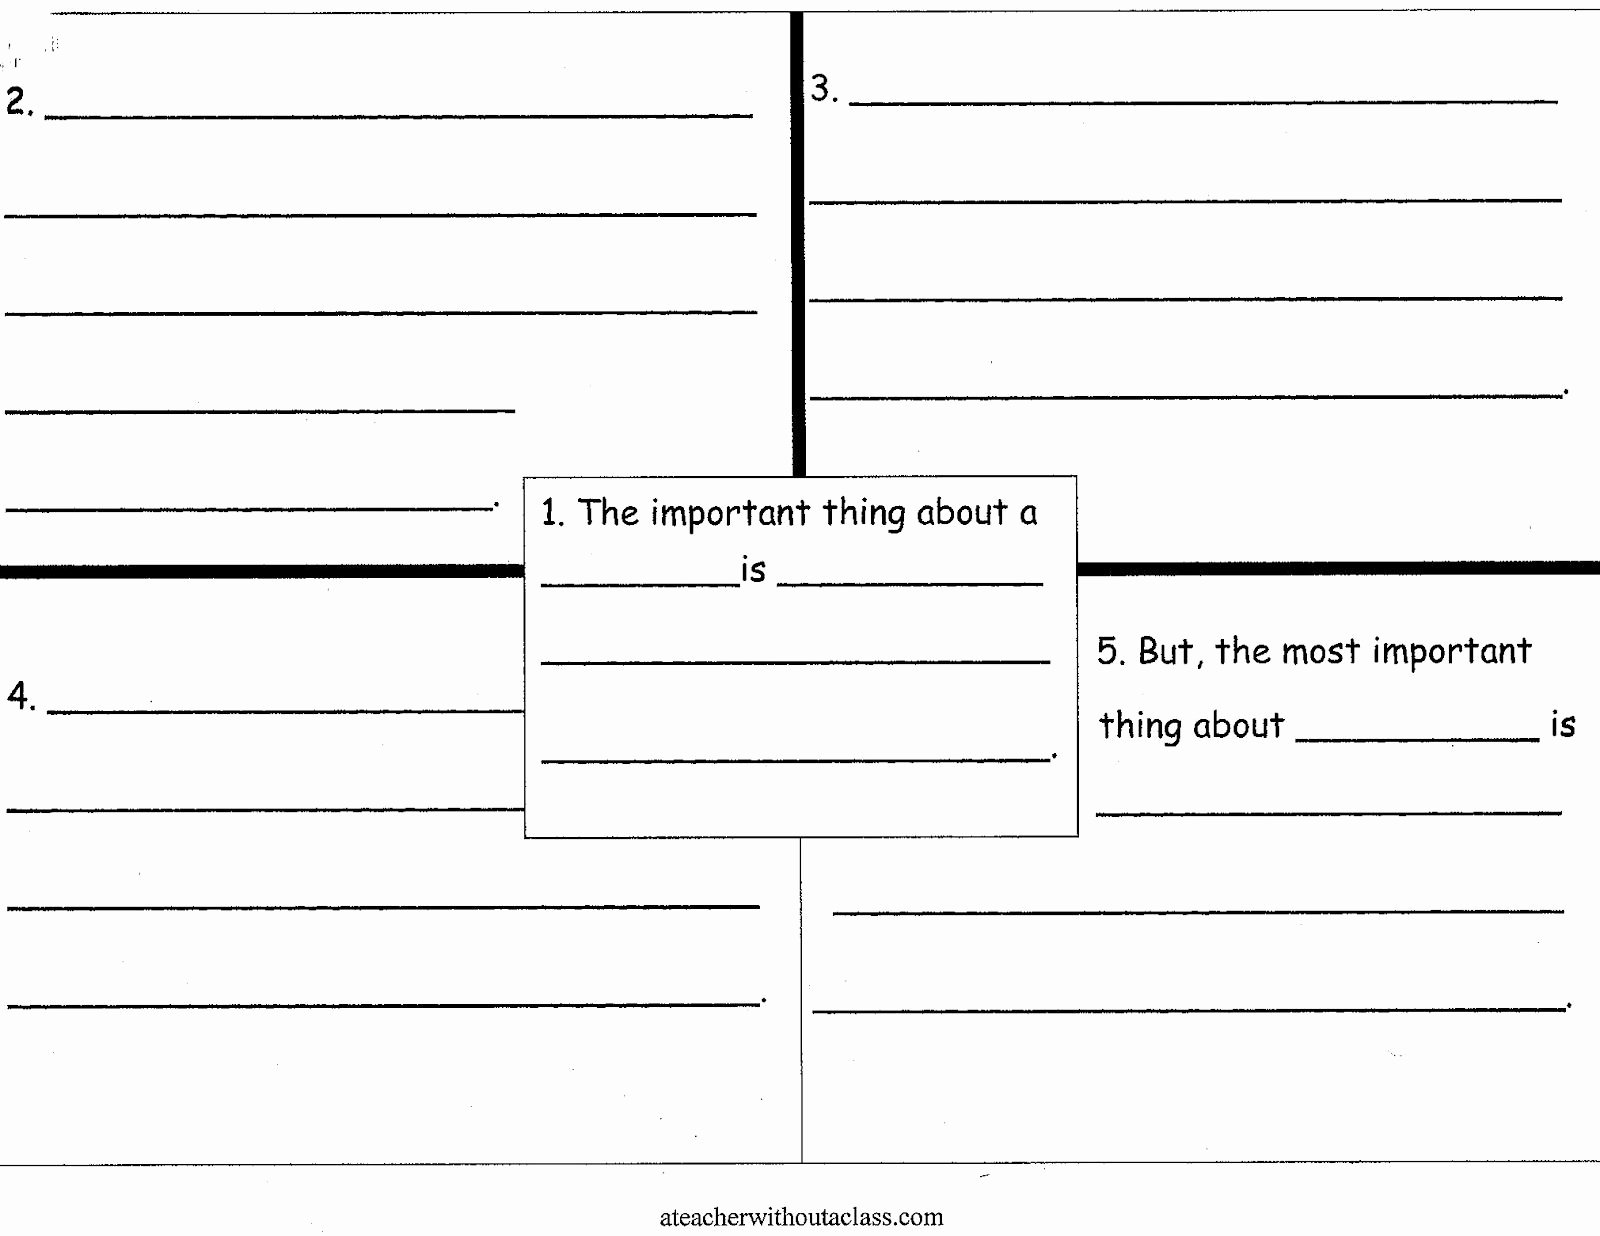 4 Square Writing Template Luxury A Teacher without A Class the Important Book 4 Square